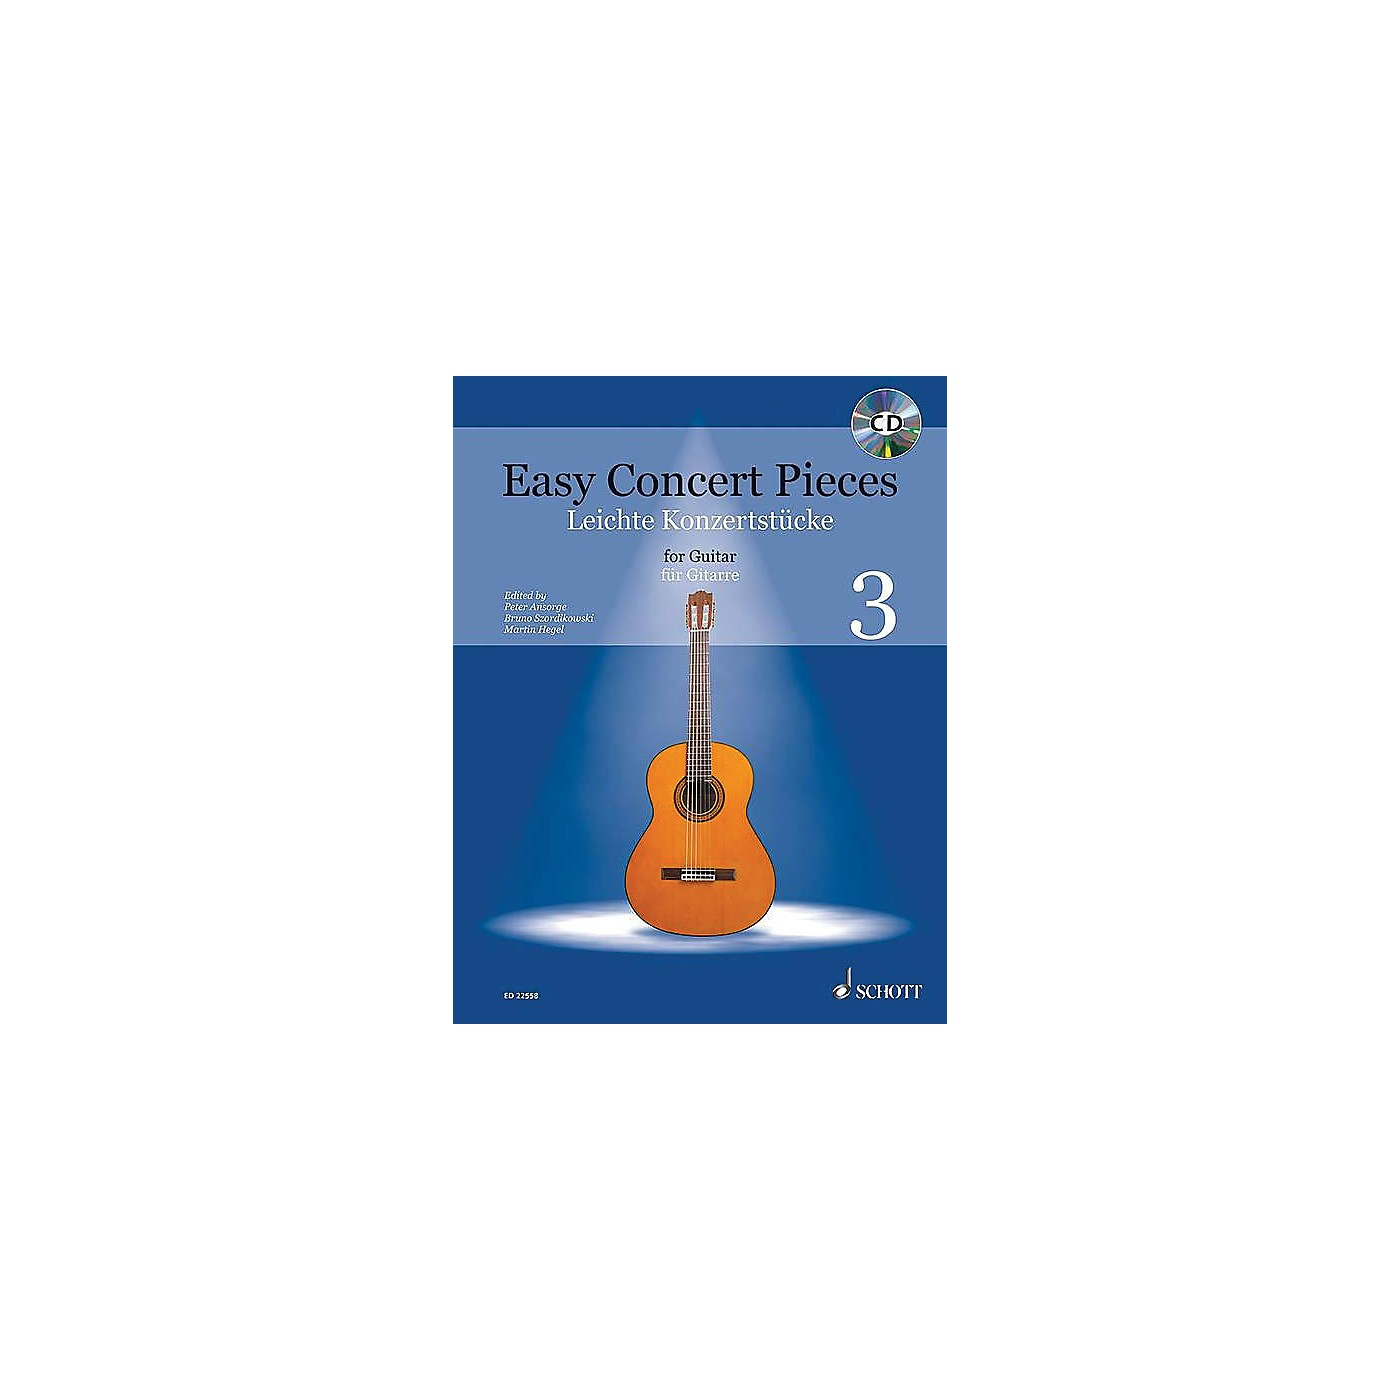 Schott Easy Concert Pieces for Guitar, Volume 3 Guitar Series Softcover with CD thumbnail